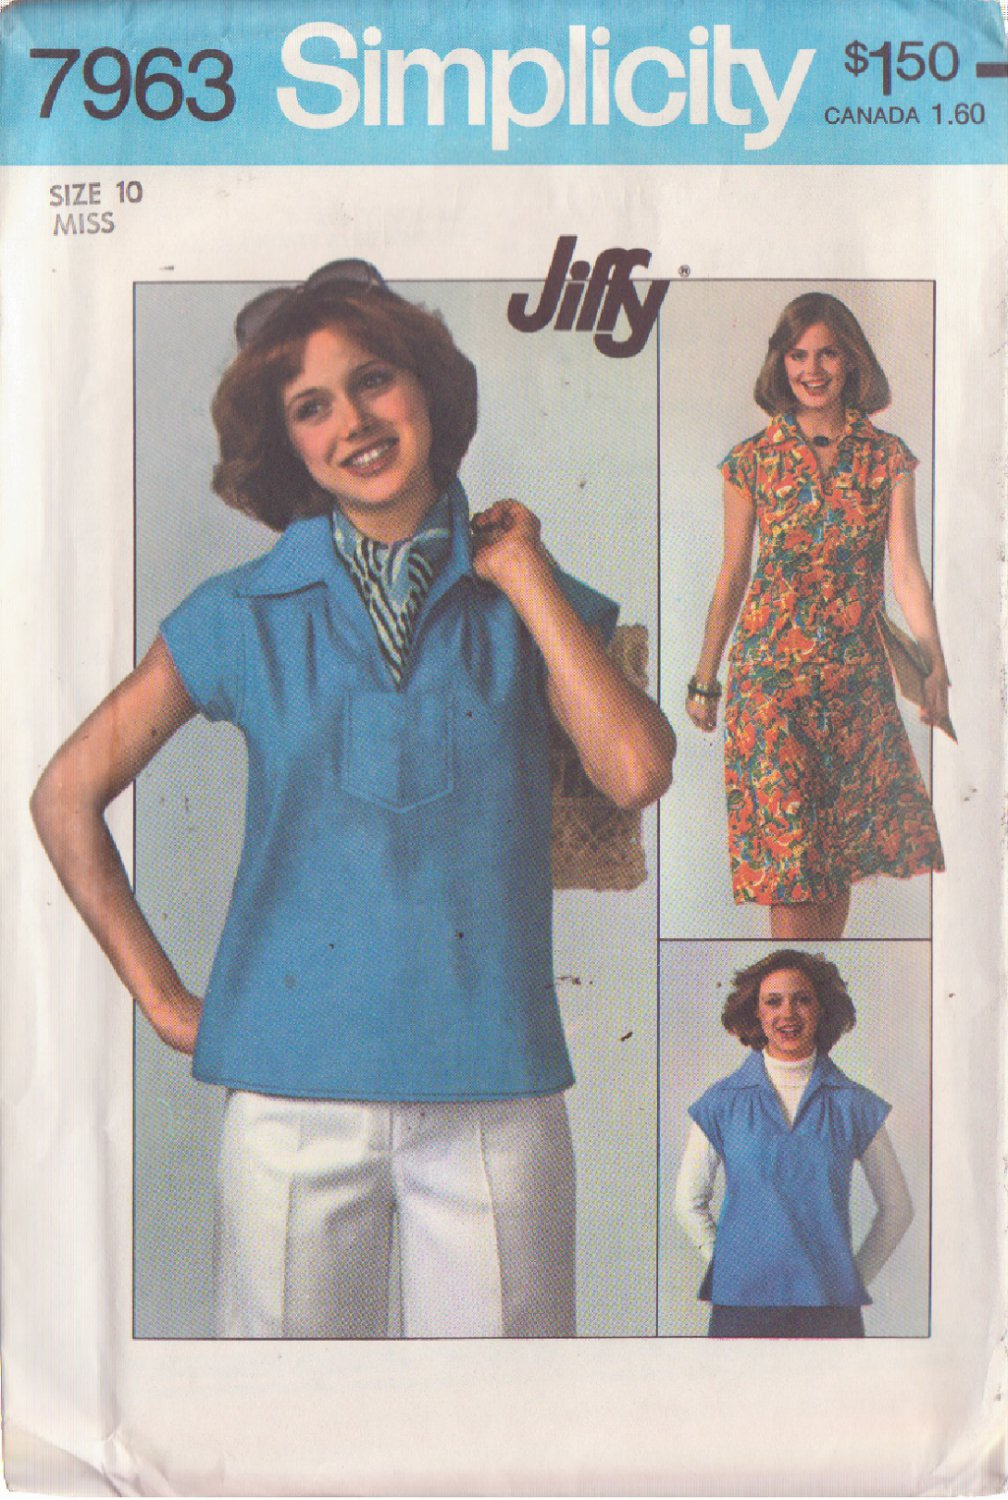 SIMPLICITY PATTERN 7963 MISSES' PULLOVER TOP AND SKIRT SIZE 10 UNCUT